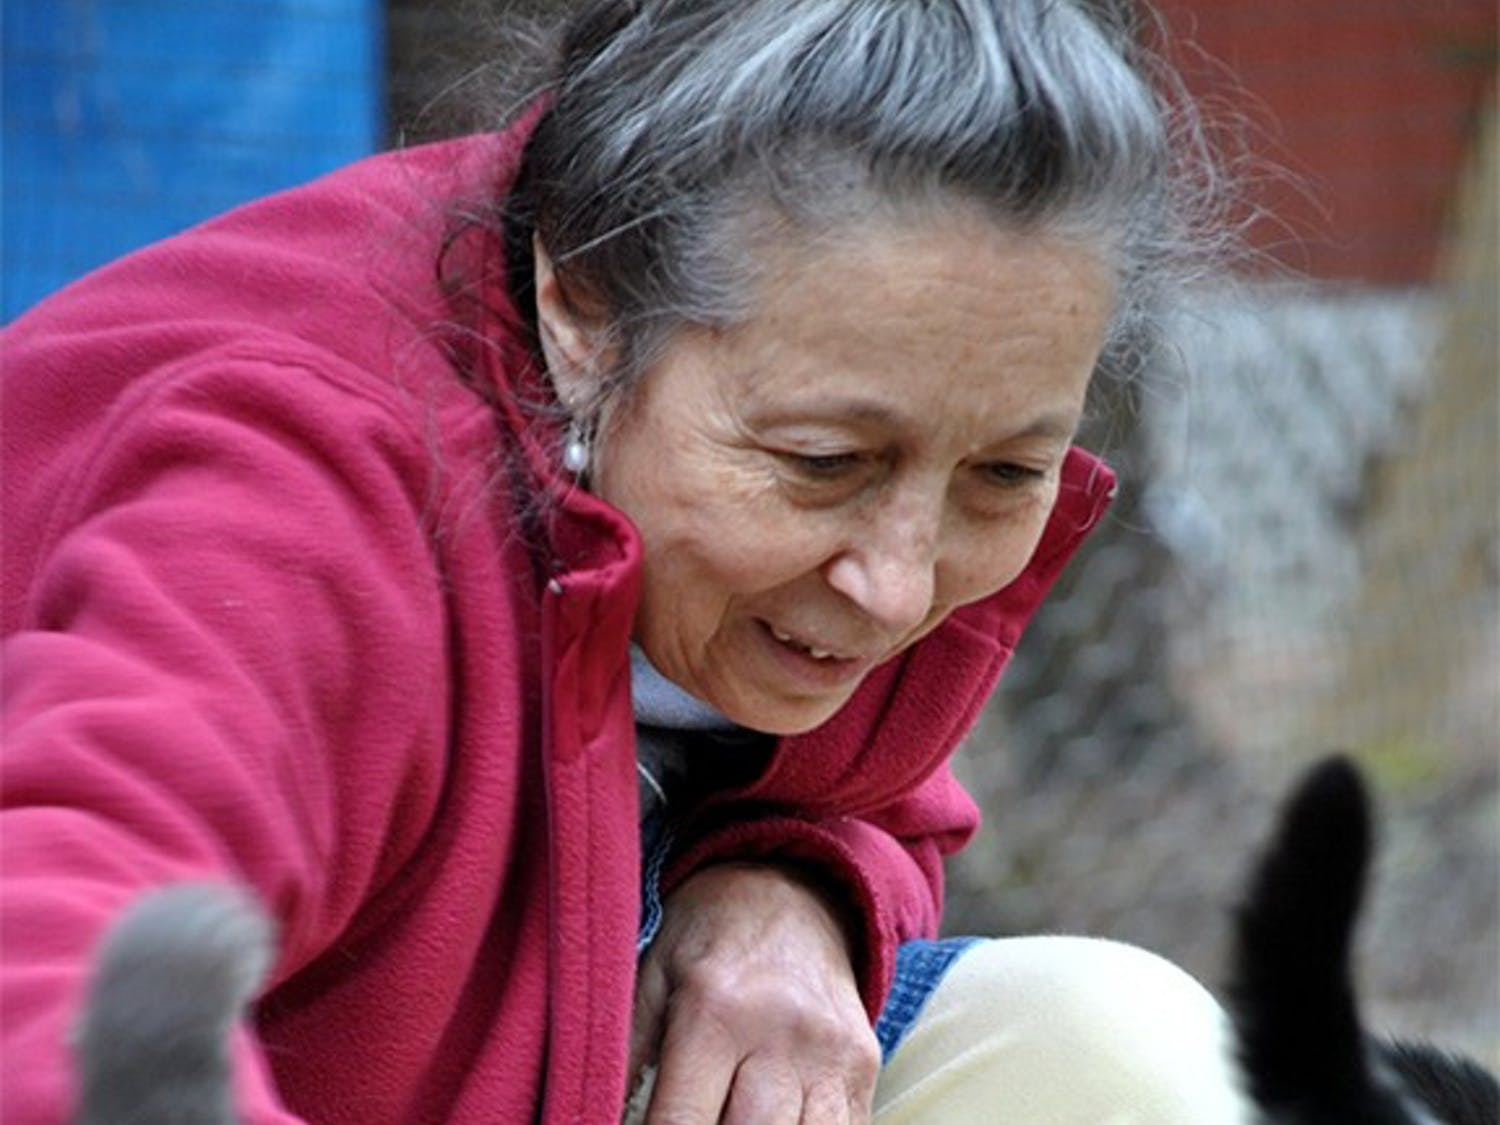 Siglinda Scarpa, founder of the Goathouse Refuge, stops to pet one of her around 200 cats.